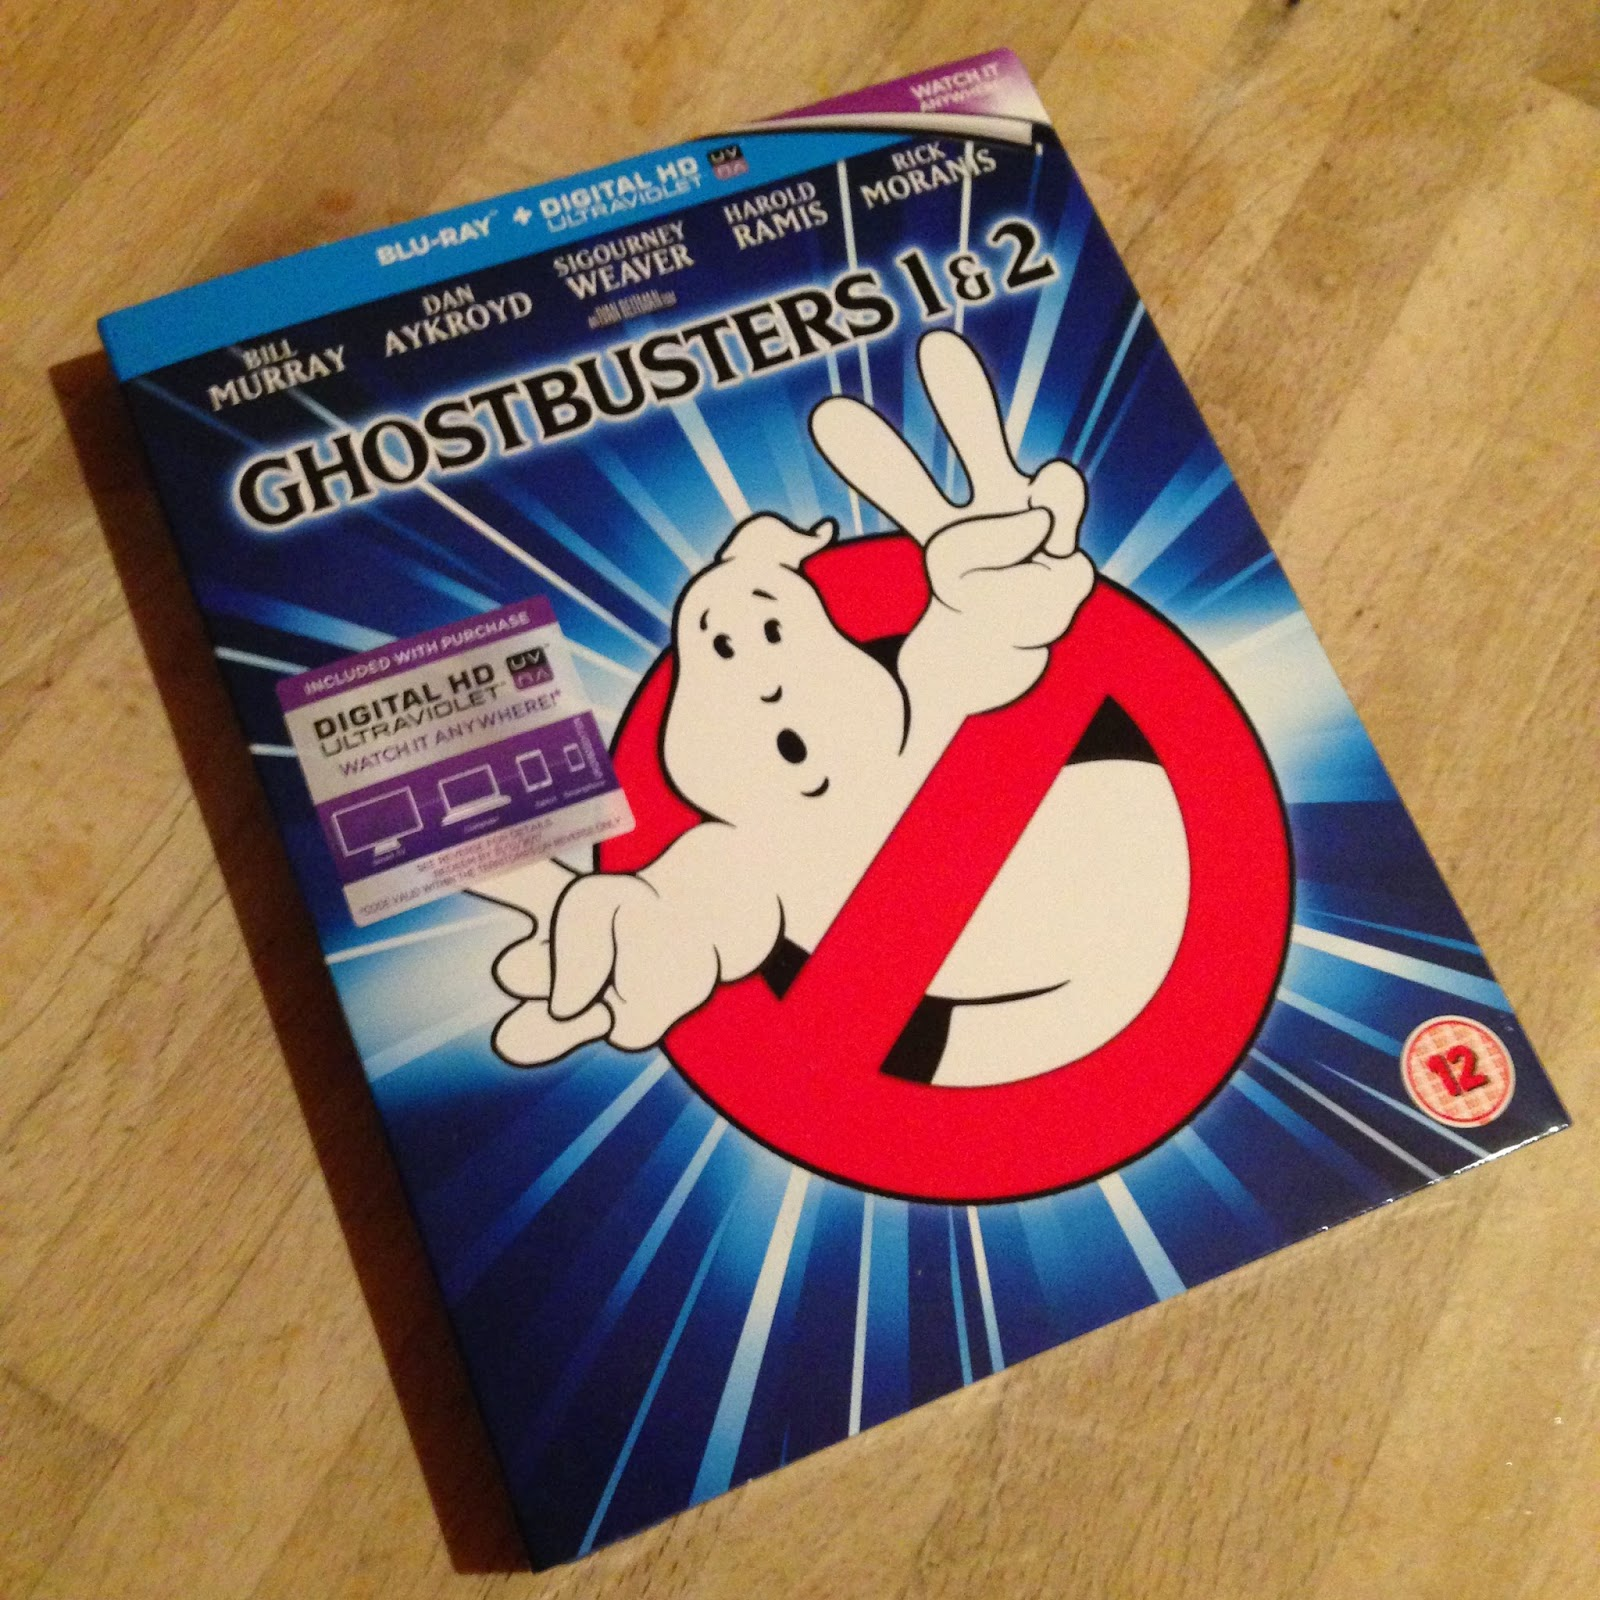 Who Ya Gonna Call? GHOSTBUSTERS!